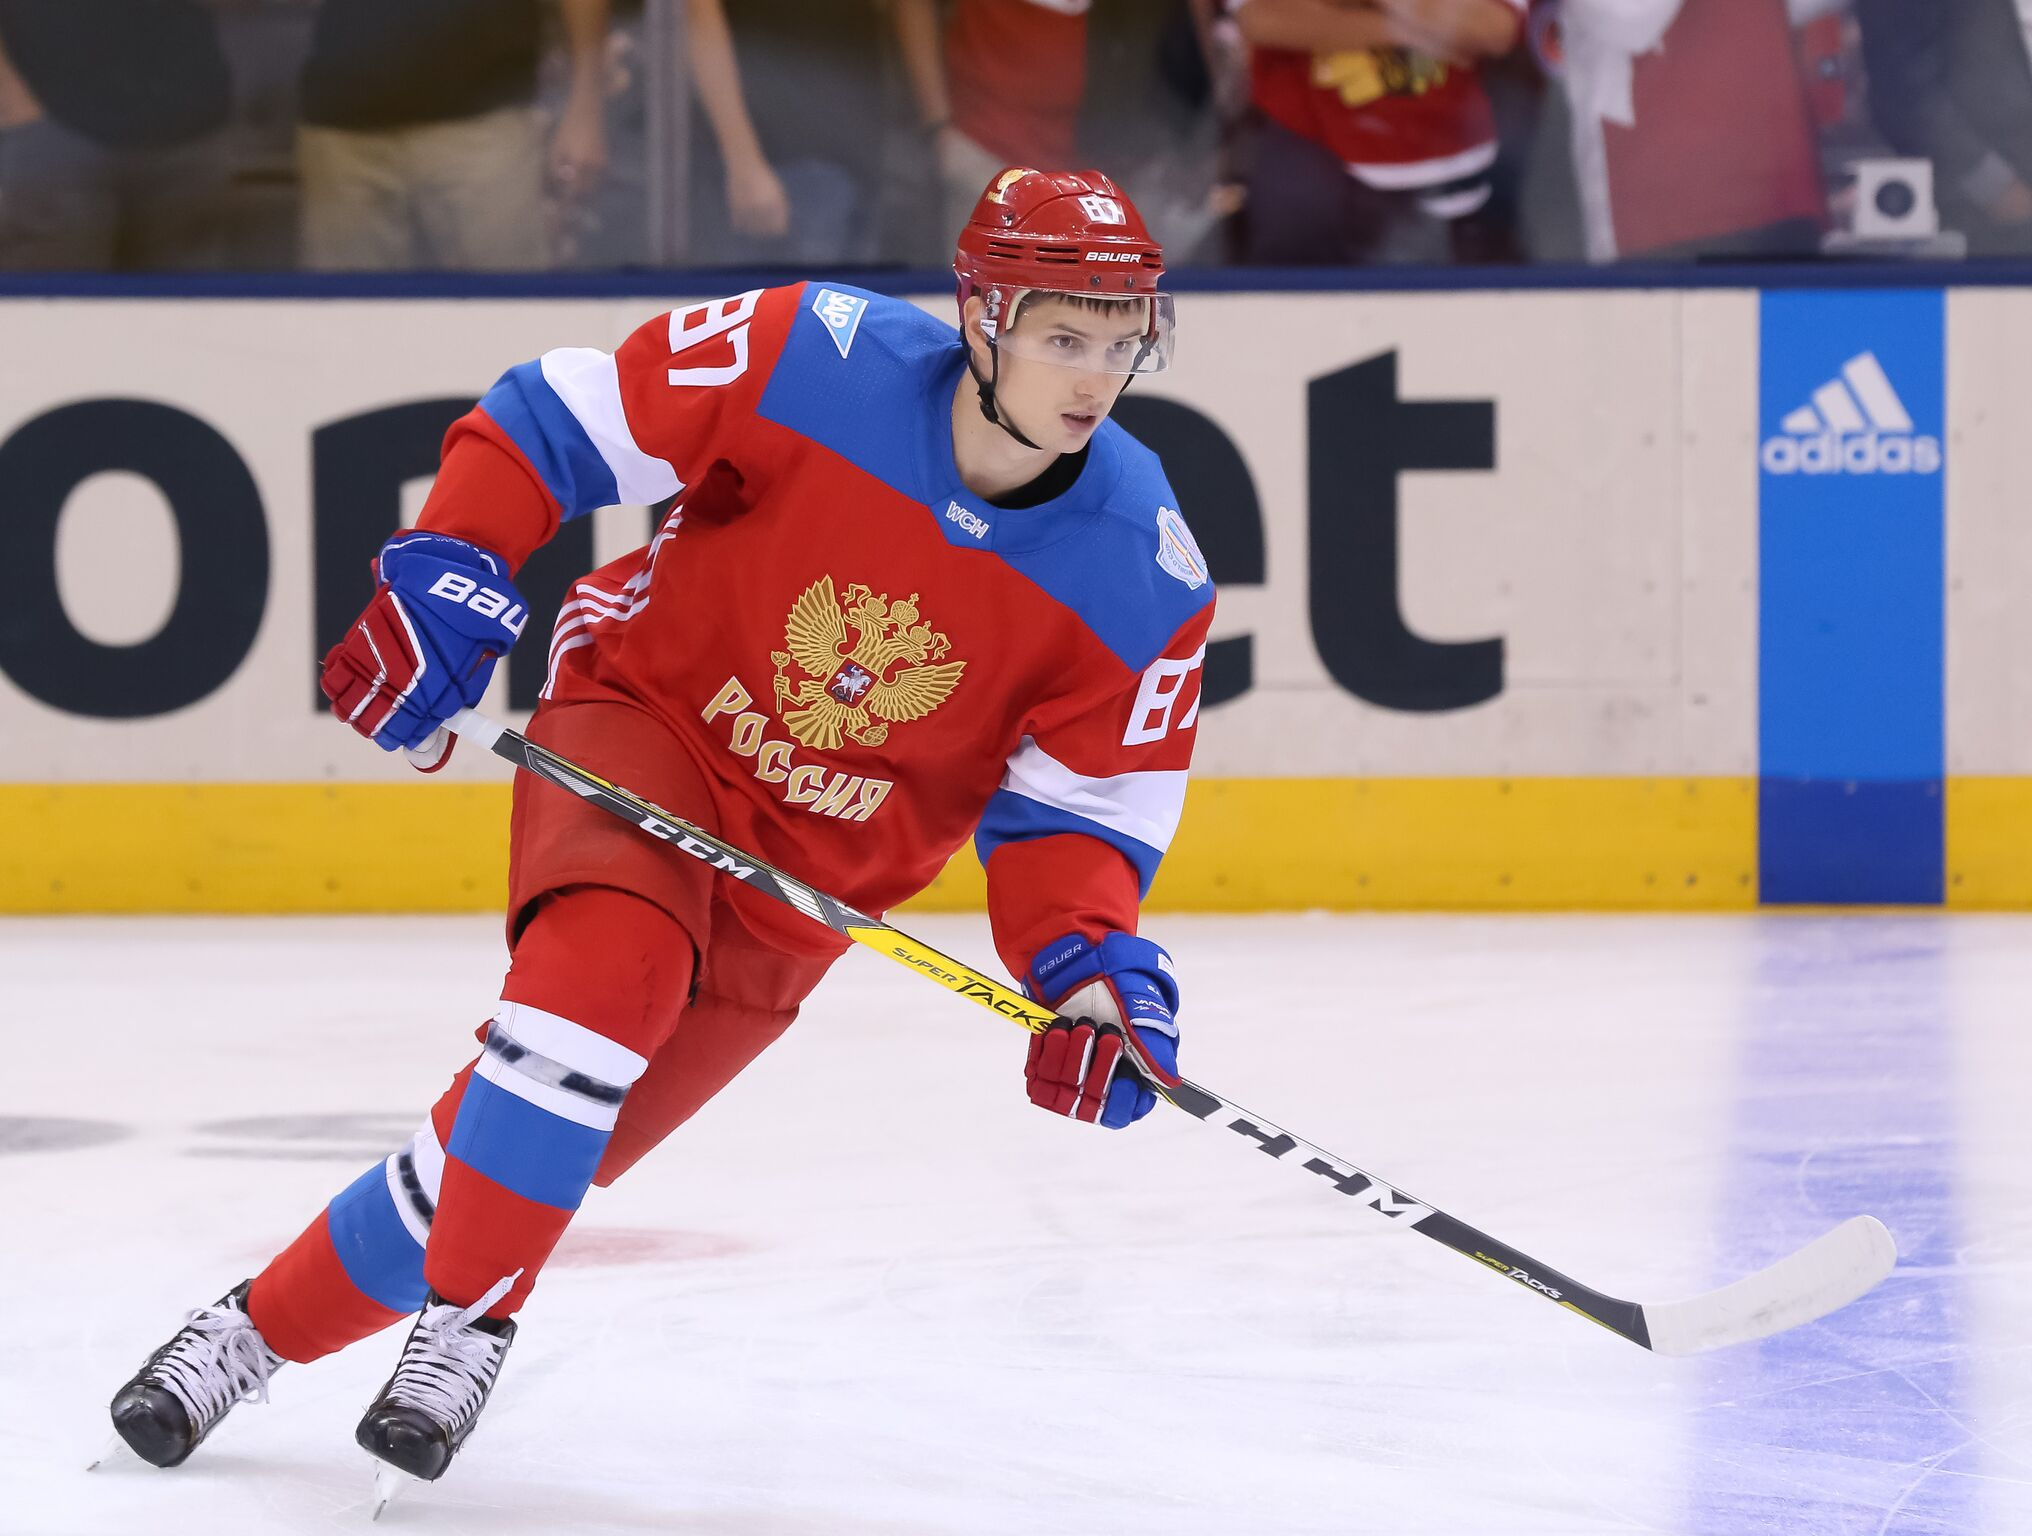 509623b0b1e Vegas fans by now know Vadim Shipachyov's KHL stats, skate size, and wife's  name. As Reid Duke is starting to realize, some Golden Knight fans have  become ...